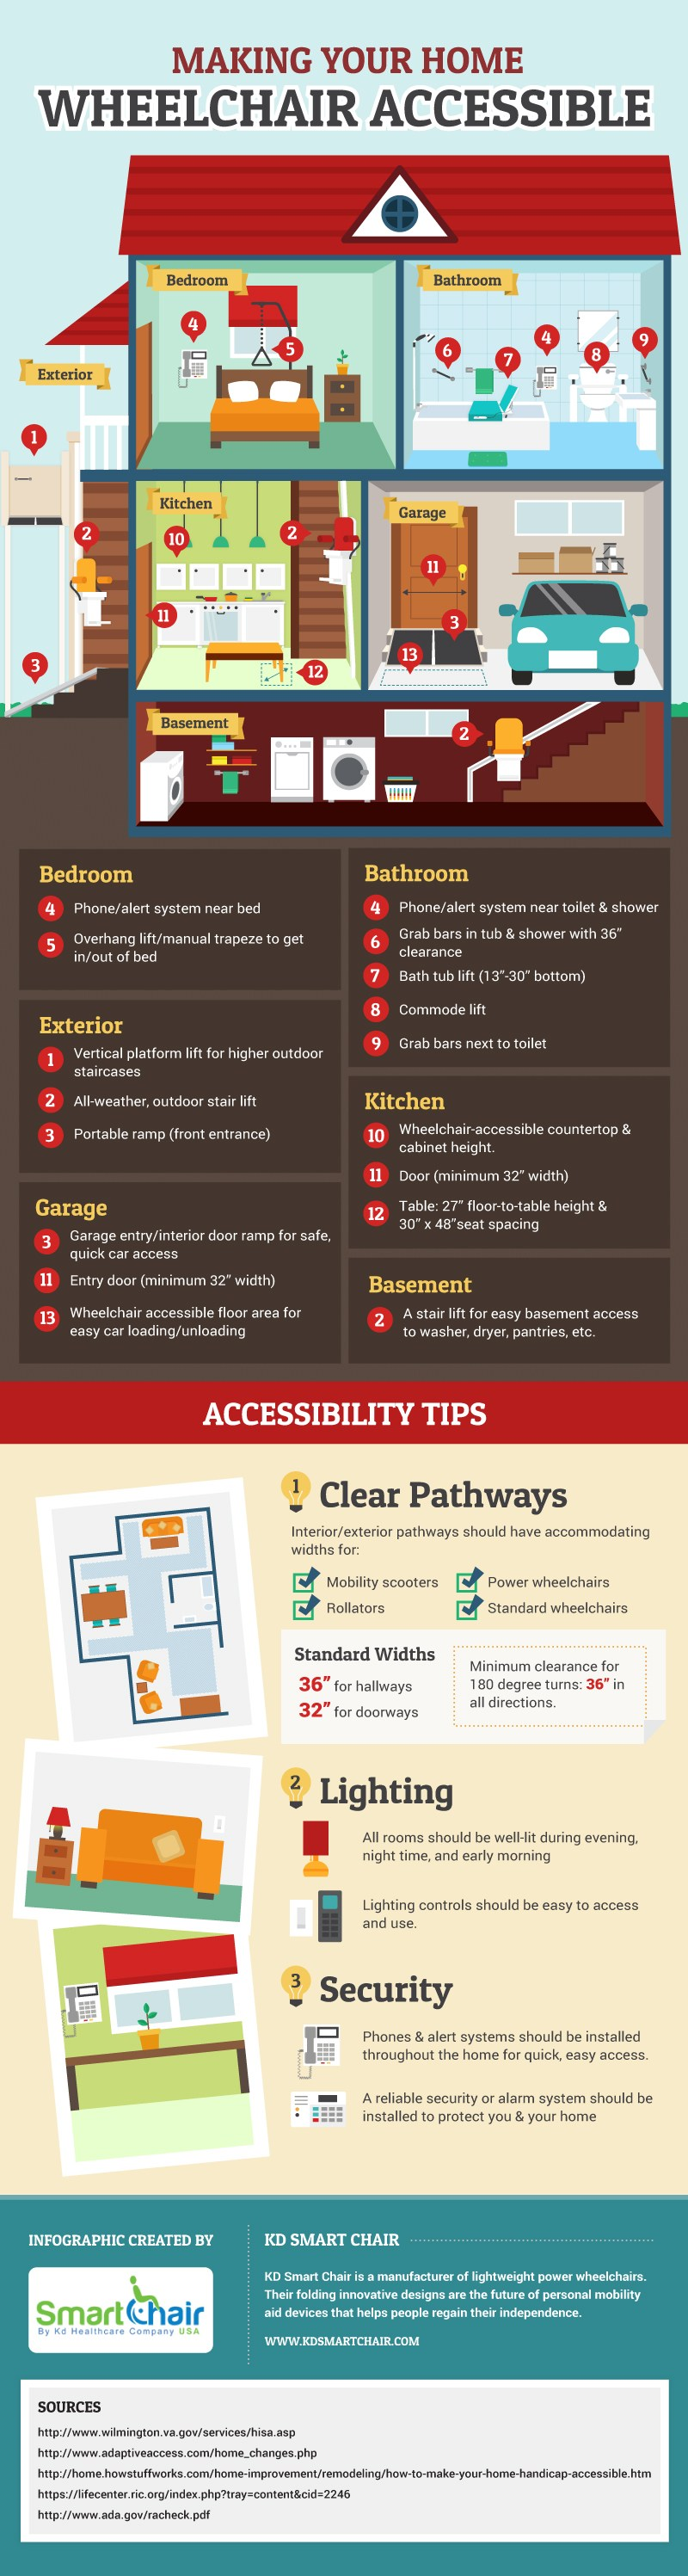 Making your home wheelchair accessible